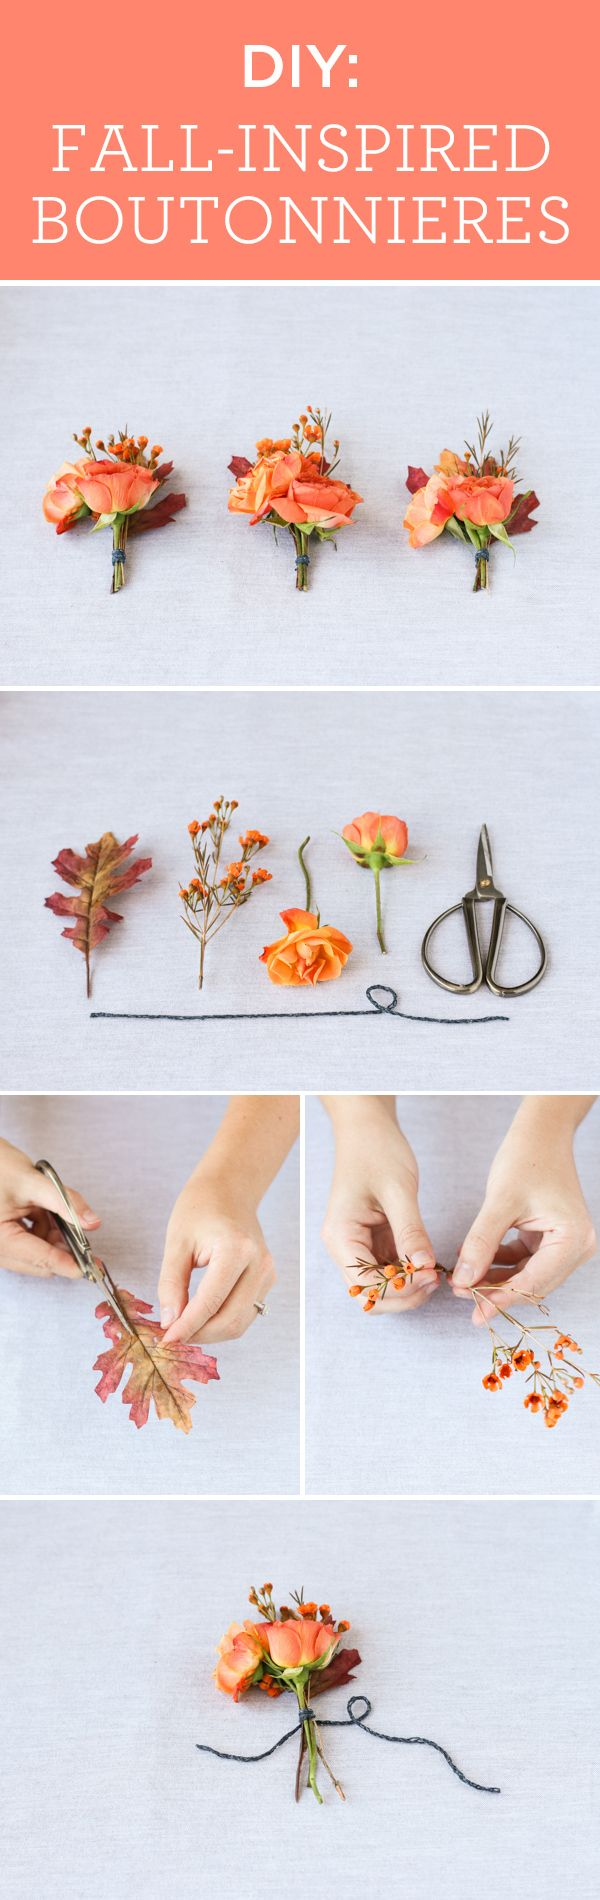 Adorable fall-inspired boutonniere DIY, complete with leaves! {By Jen Kirk via Project Wedding}